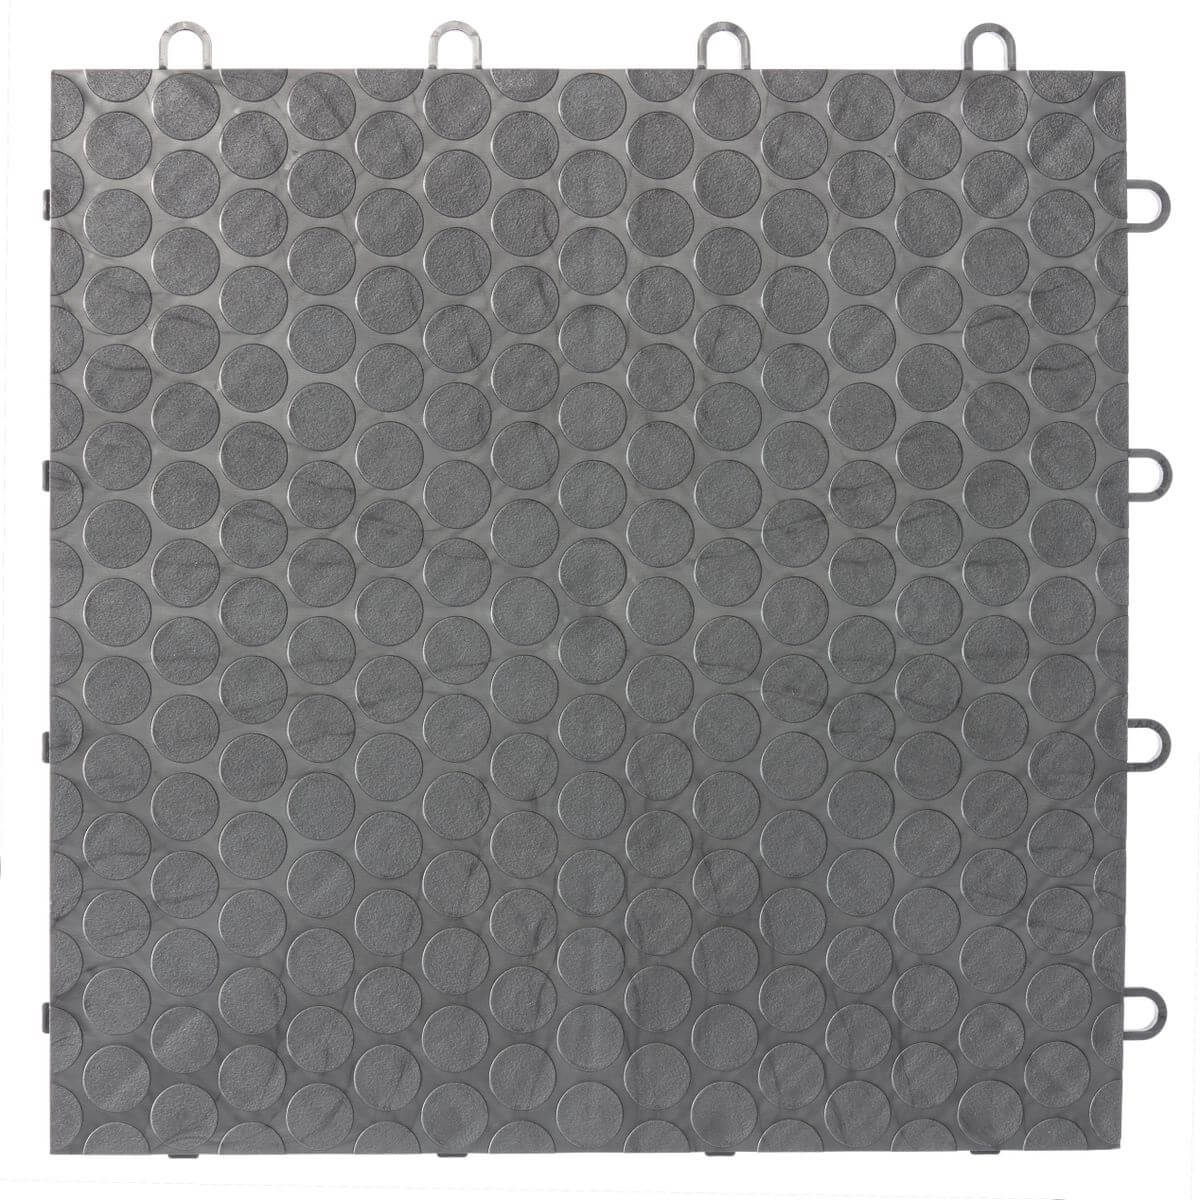 TrueLock HD Extreme Coin Garage Tile